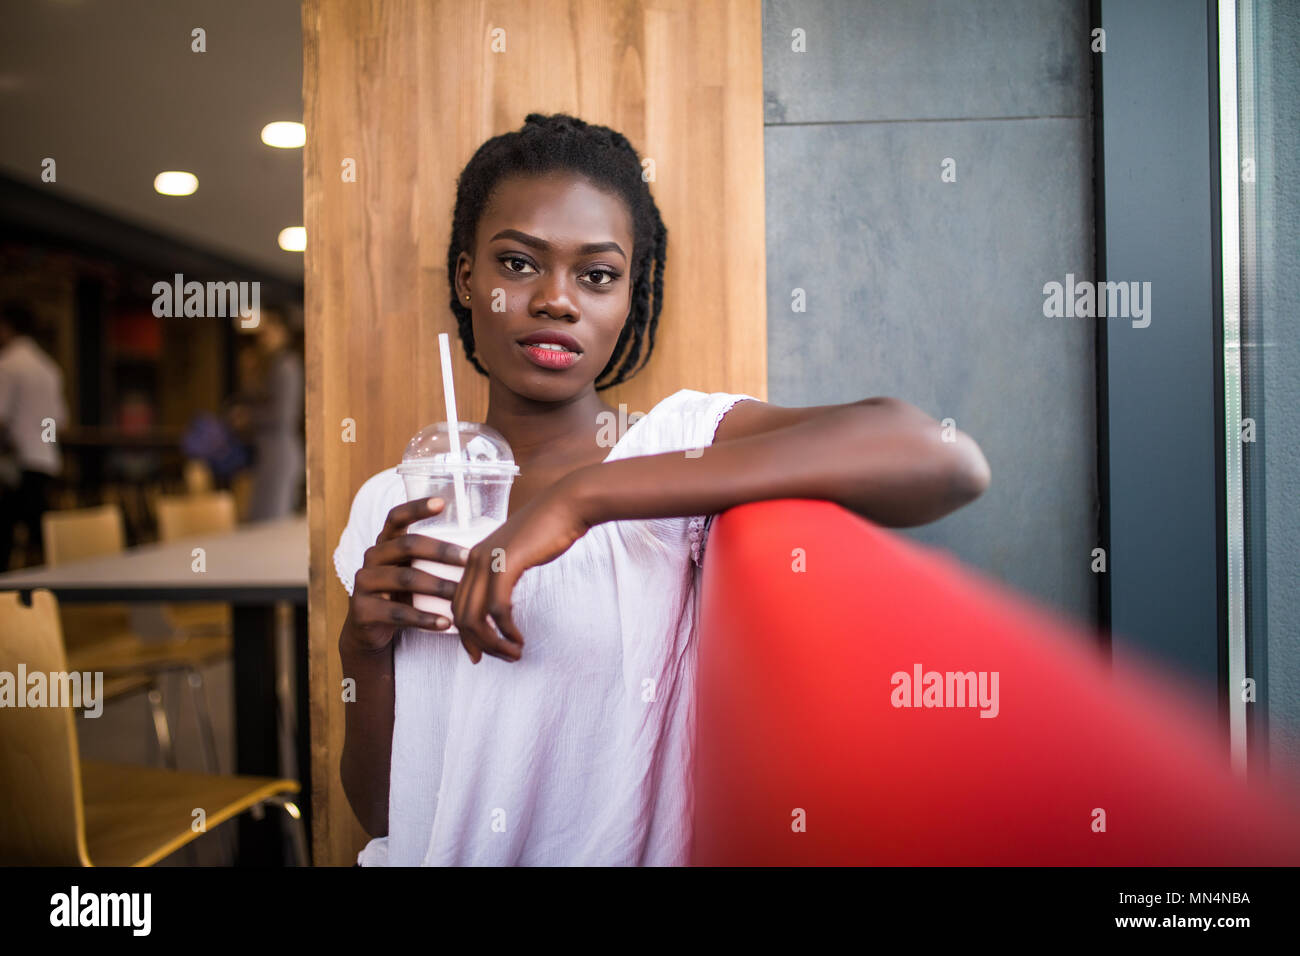 Photo of positive dark skinned afro american female ejoys good rest at coffee shop, drinks beverage. People, leisure and eating concept Stock Photo